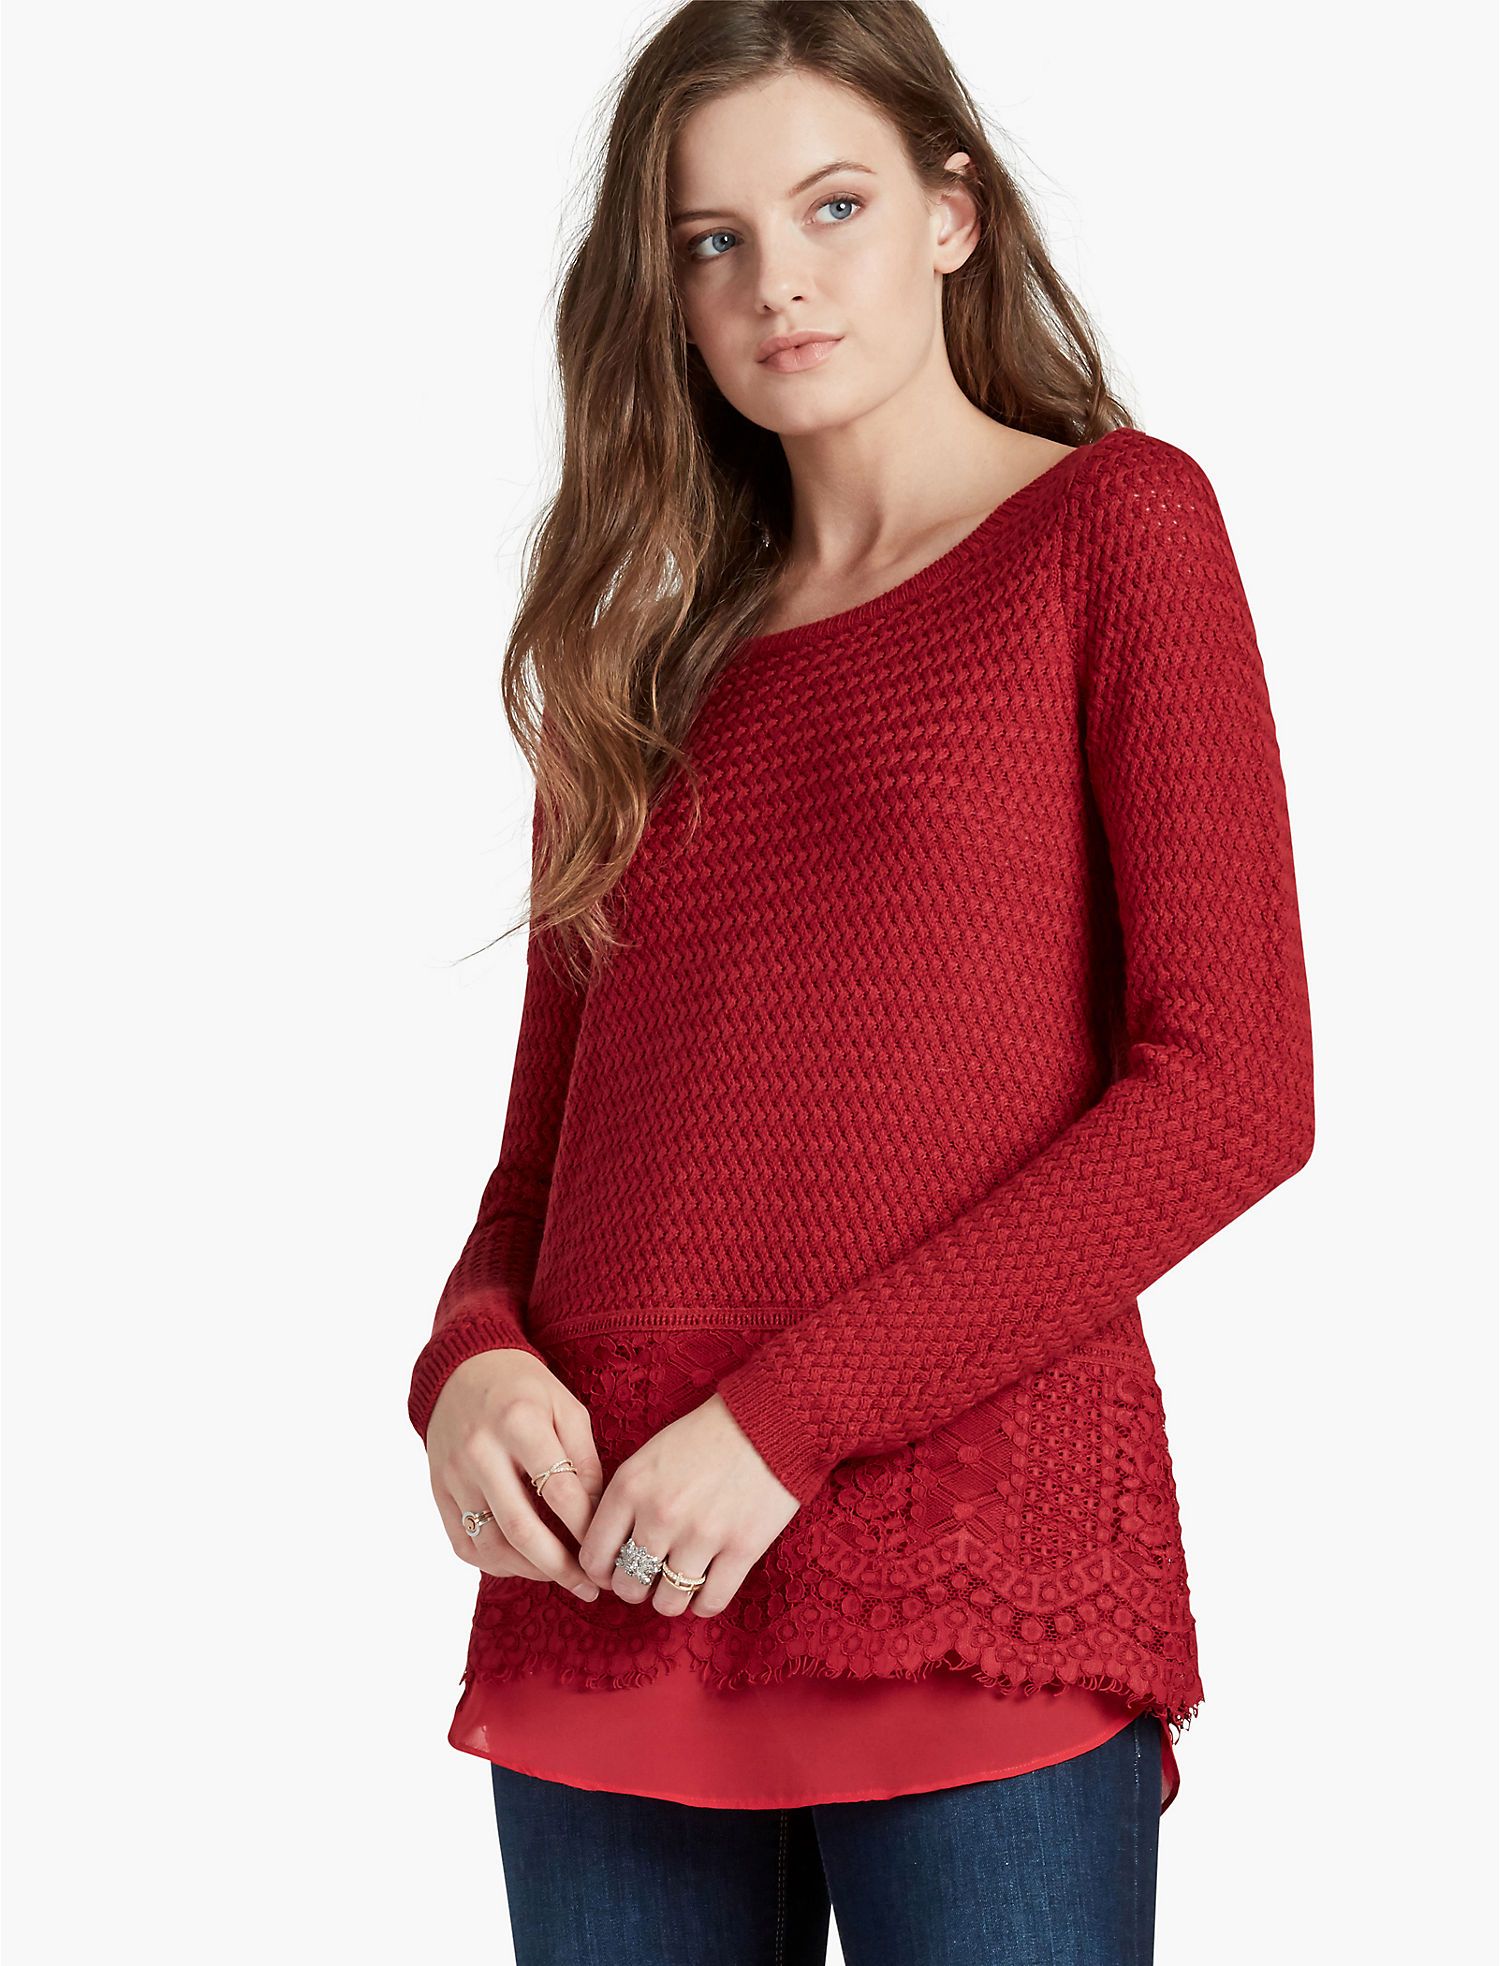 LACE MIX SWEATER - Lucky Brand 2.0